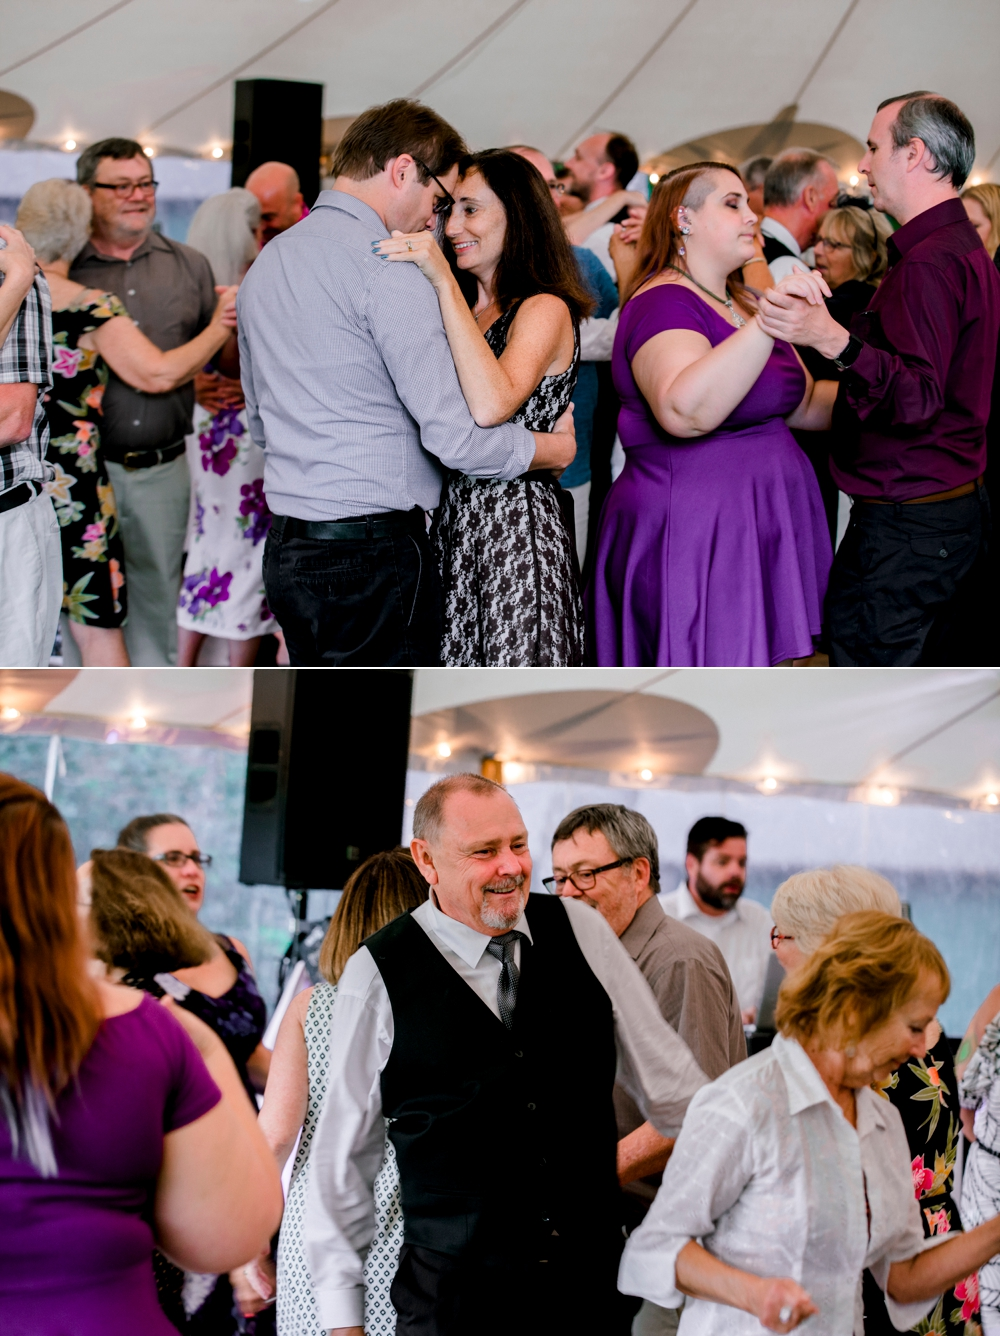 SomerbyJonesPhotography__VermontWedding_VTWedding_BackyardVermontWedding_0042.jpg